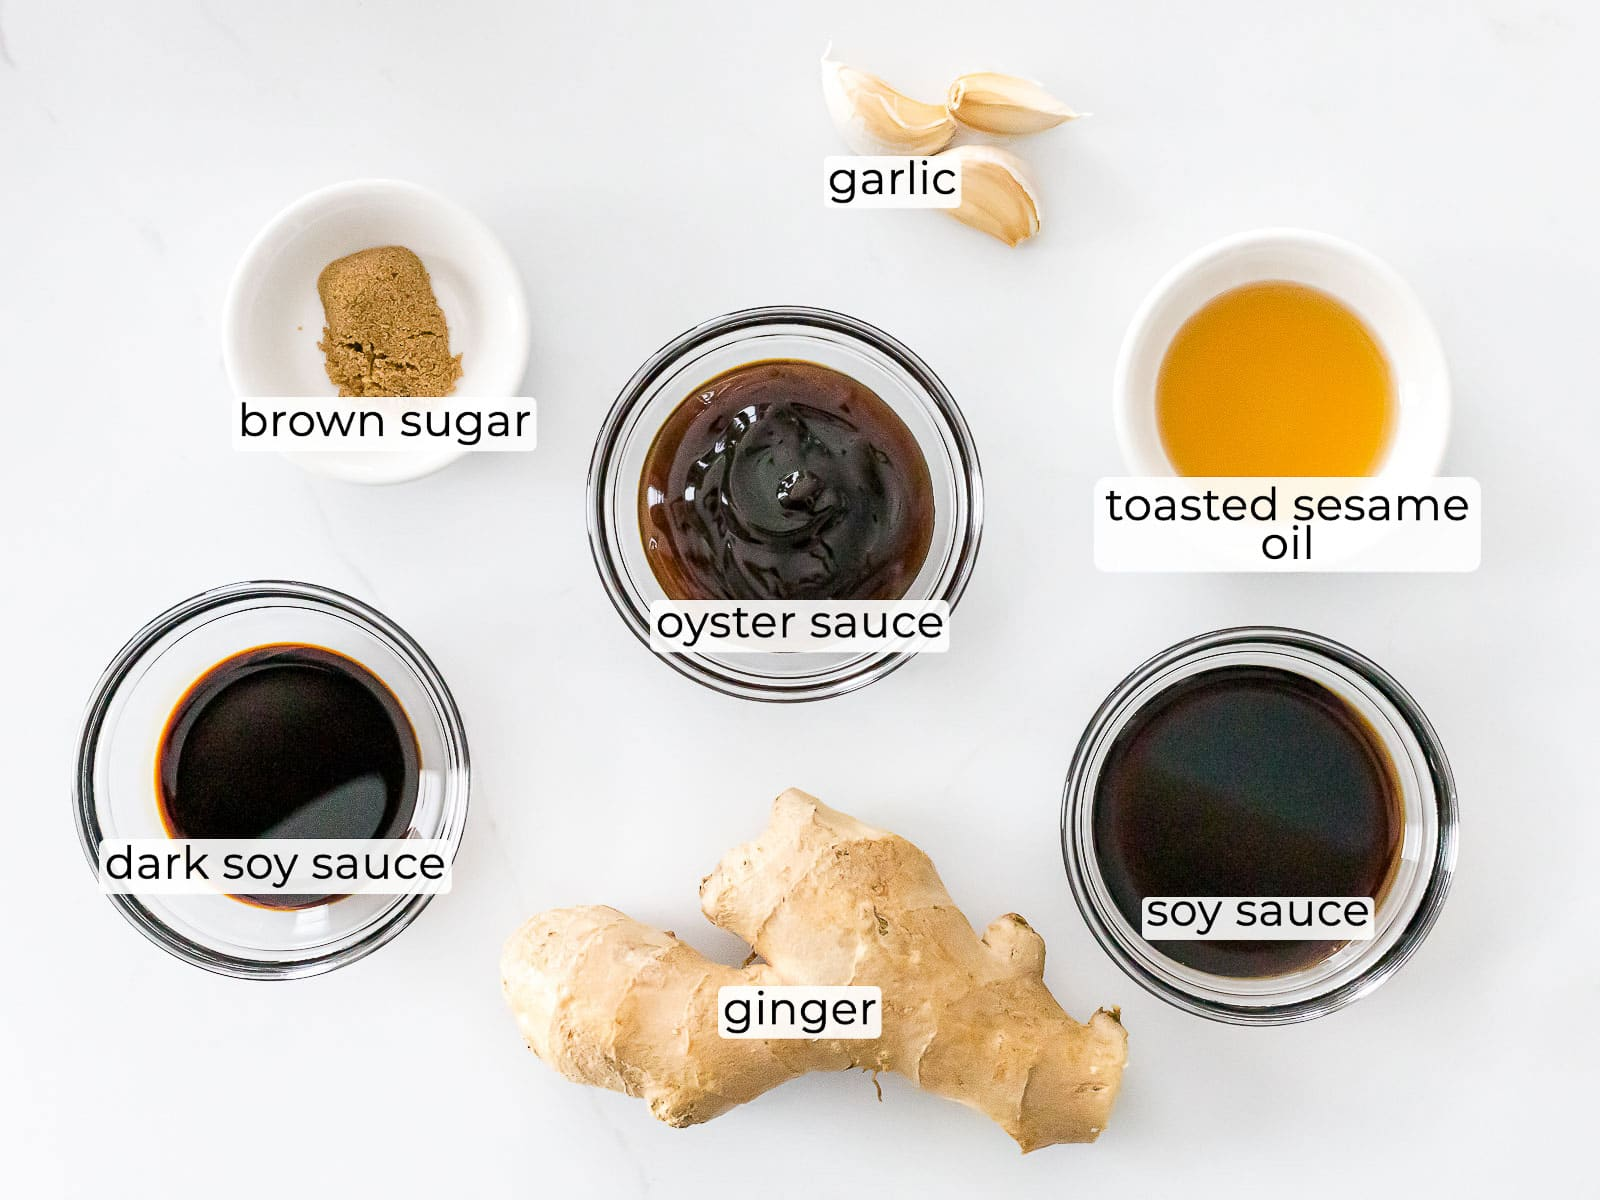 chow mein sauce ingredients